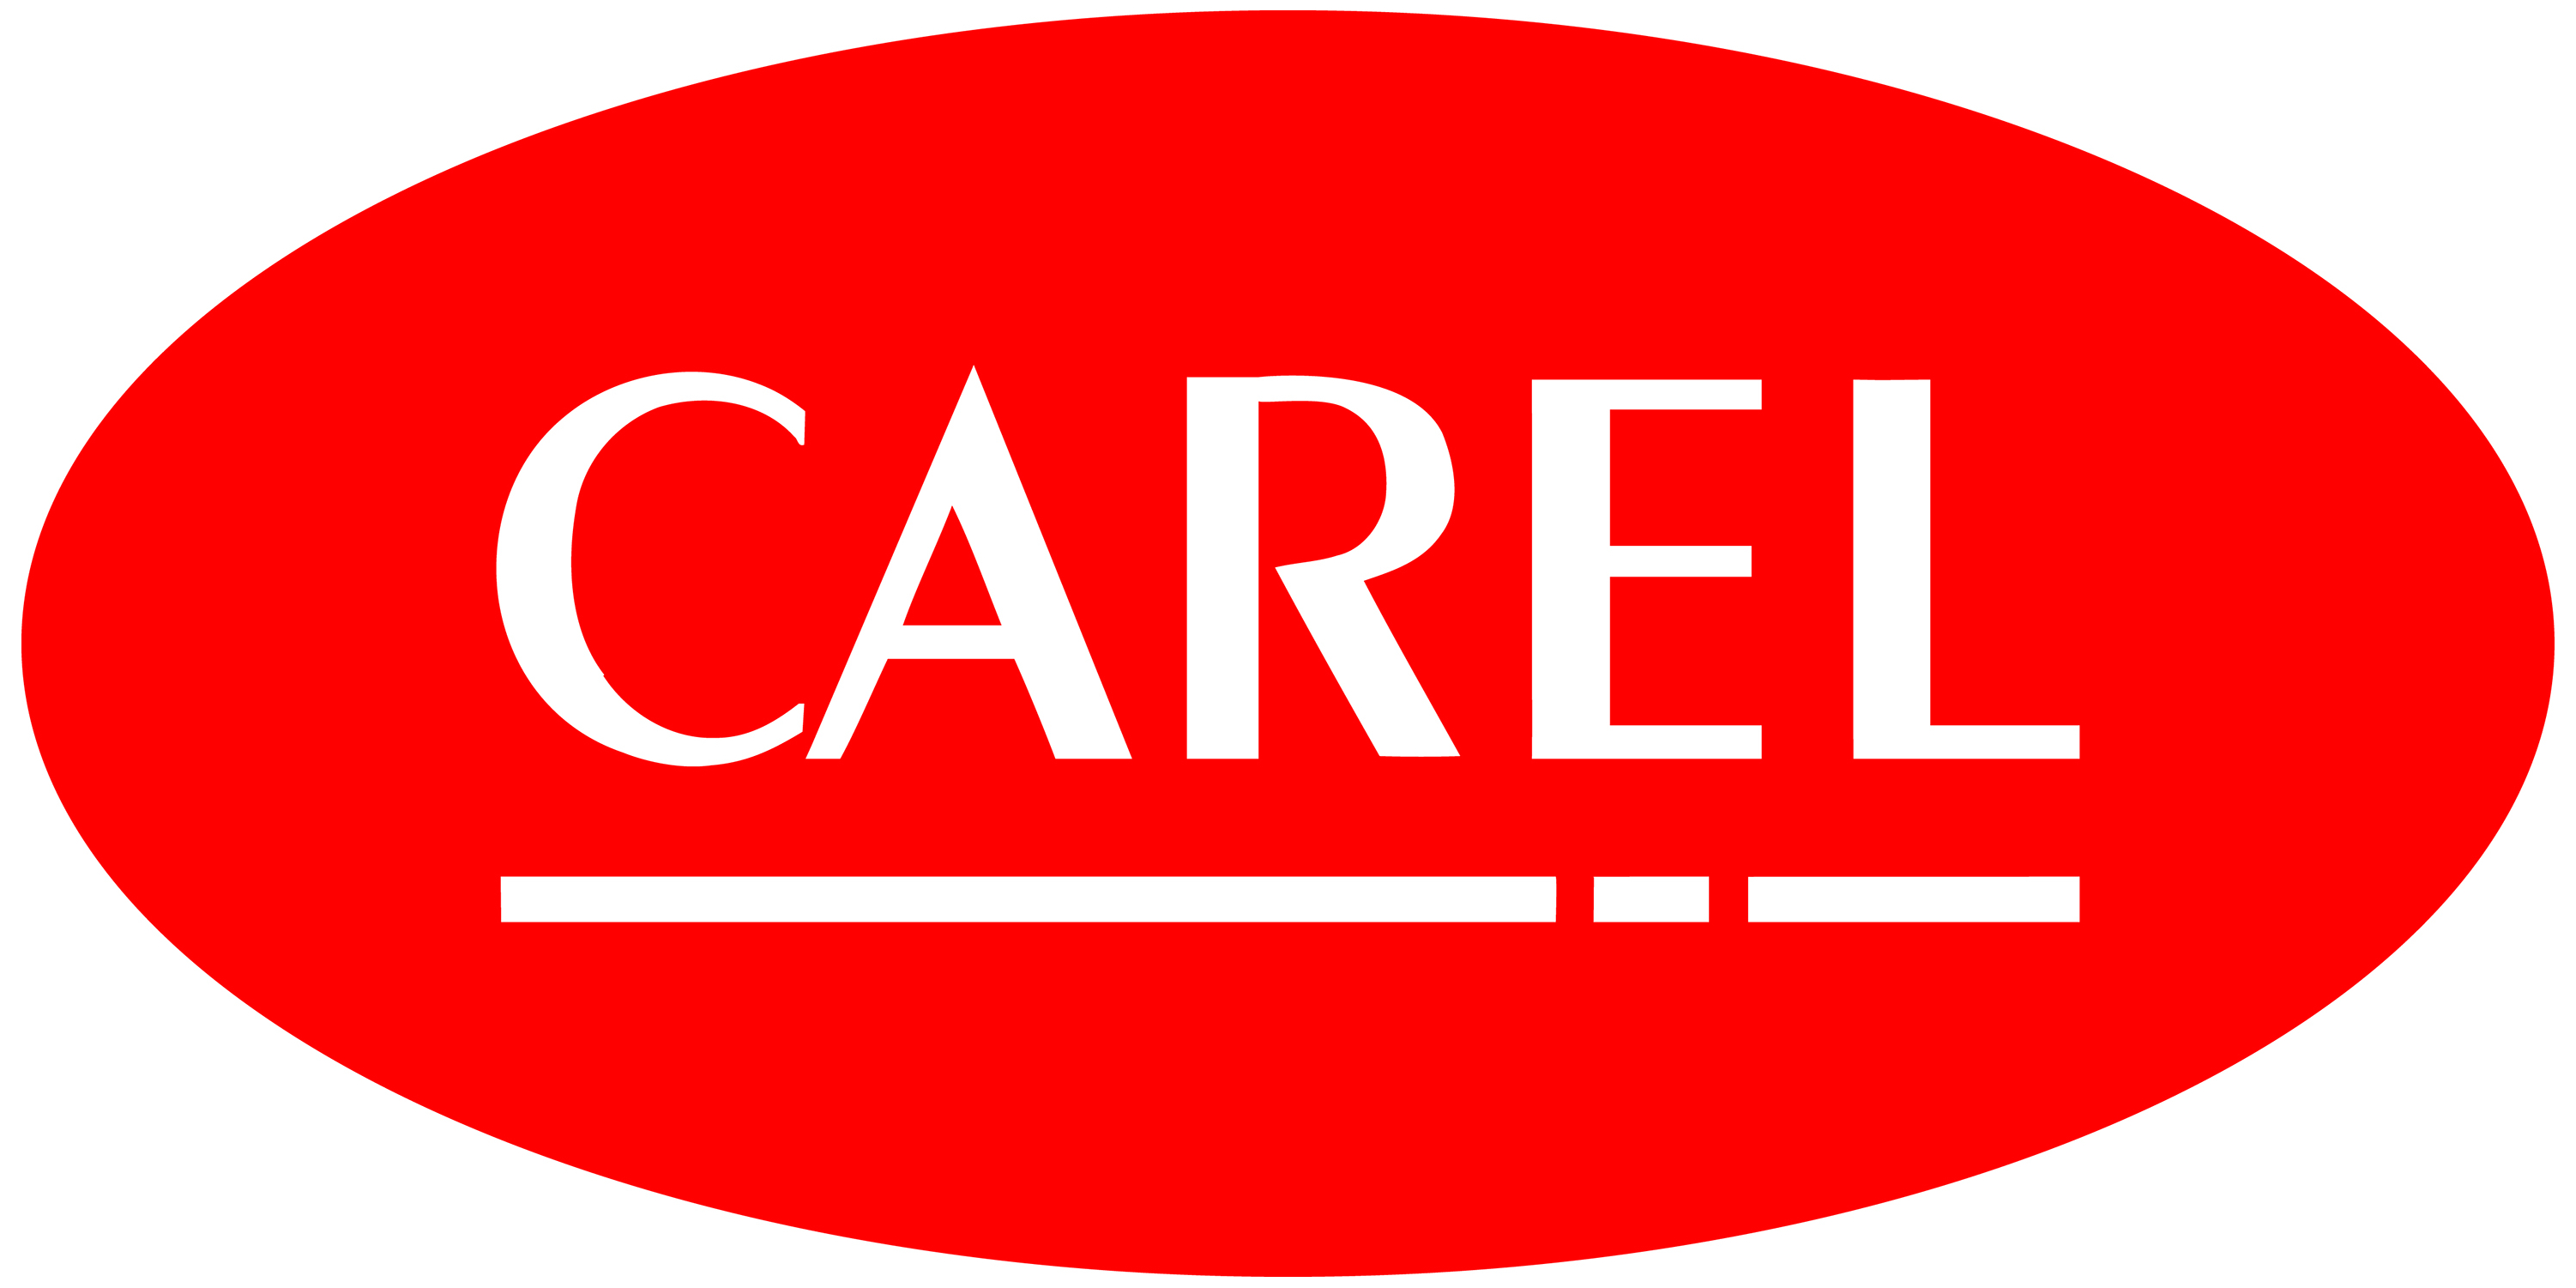 CAREL's Company Profile